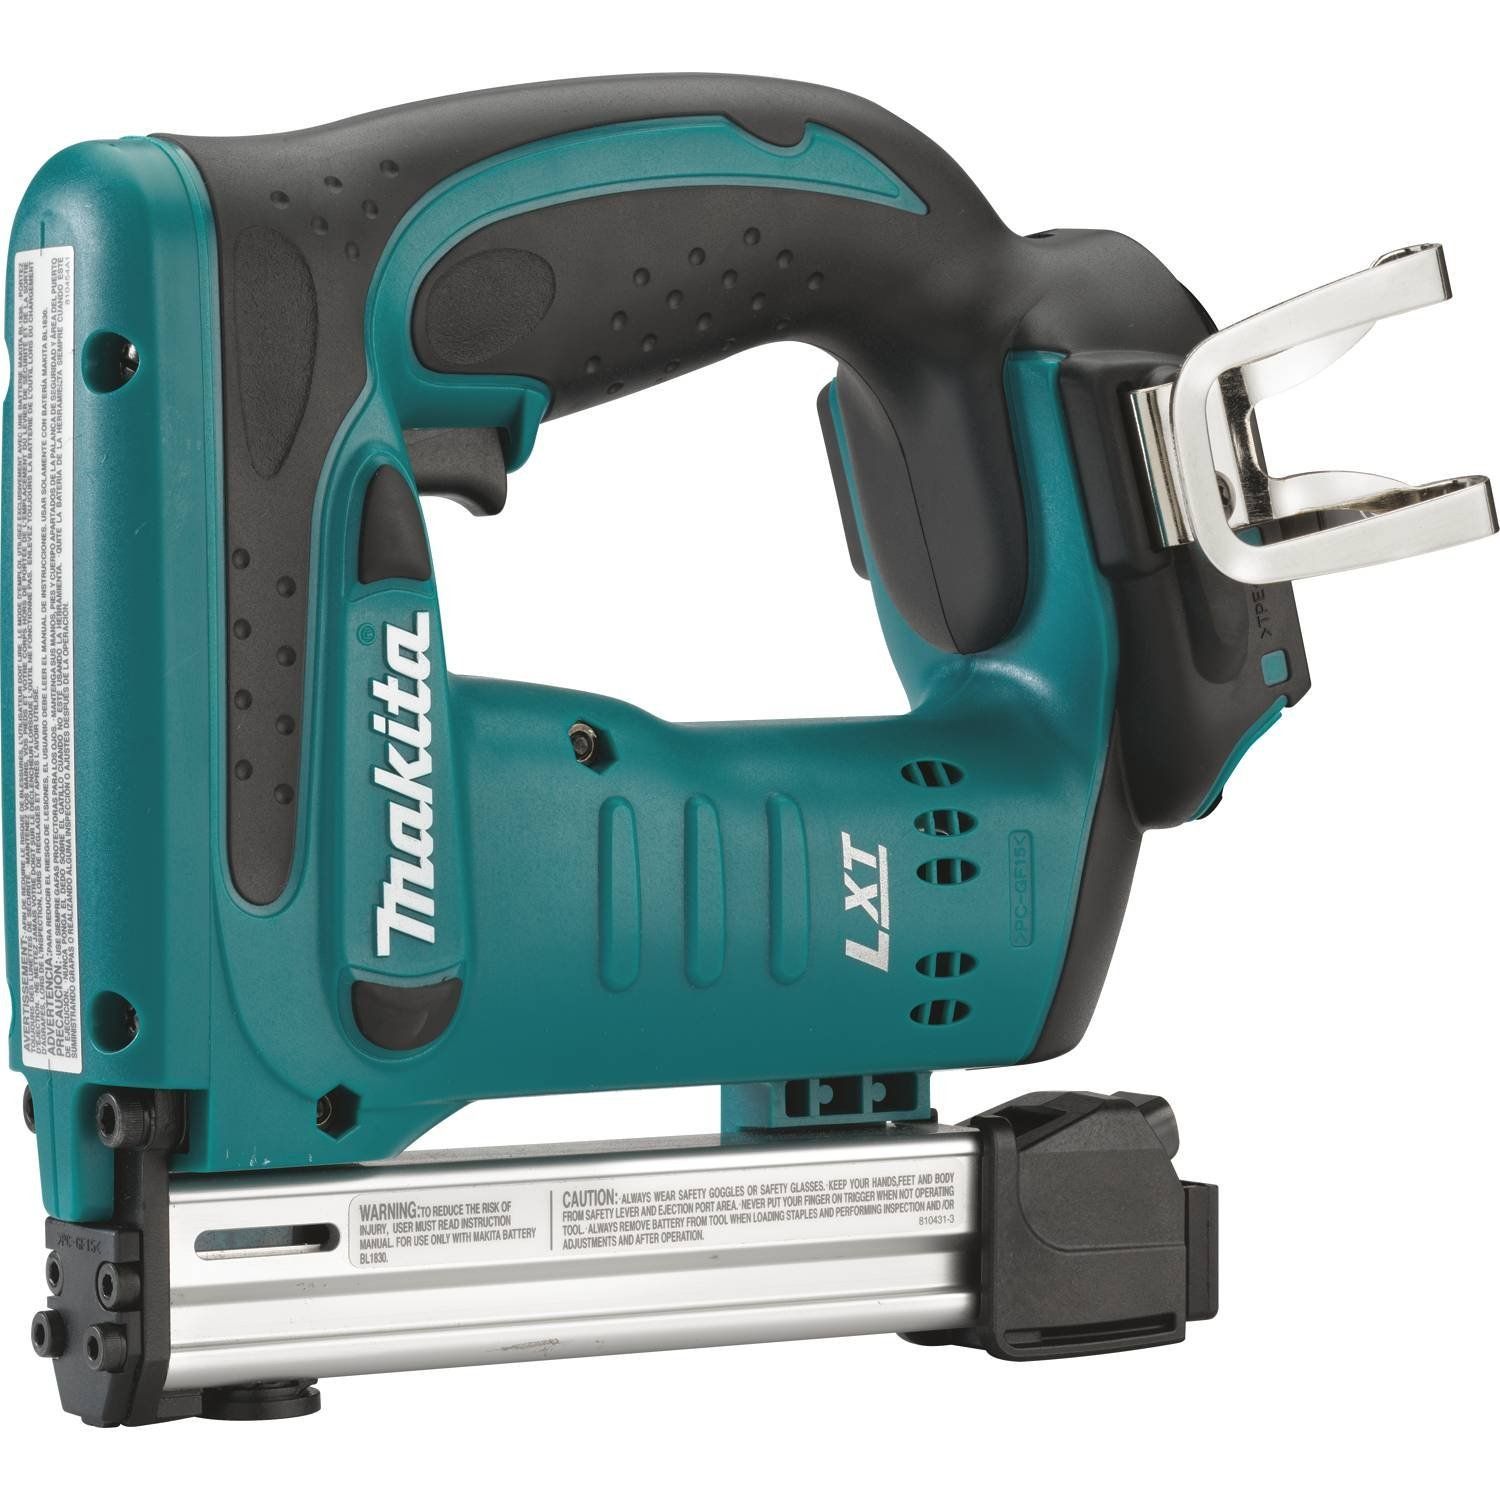 Makita XTS01Z 18V LXT 3.0 Ah Cordless Lithium-Ion 3/8 in. Crown Stapler Review for 2016